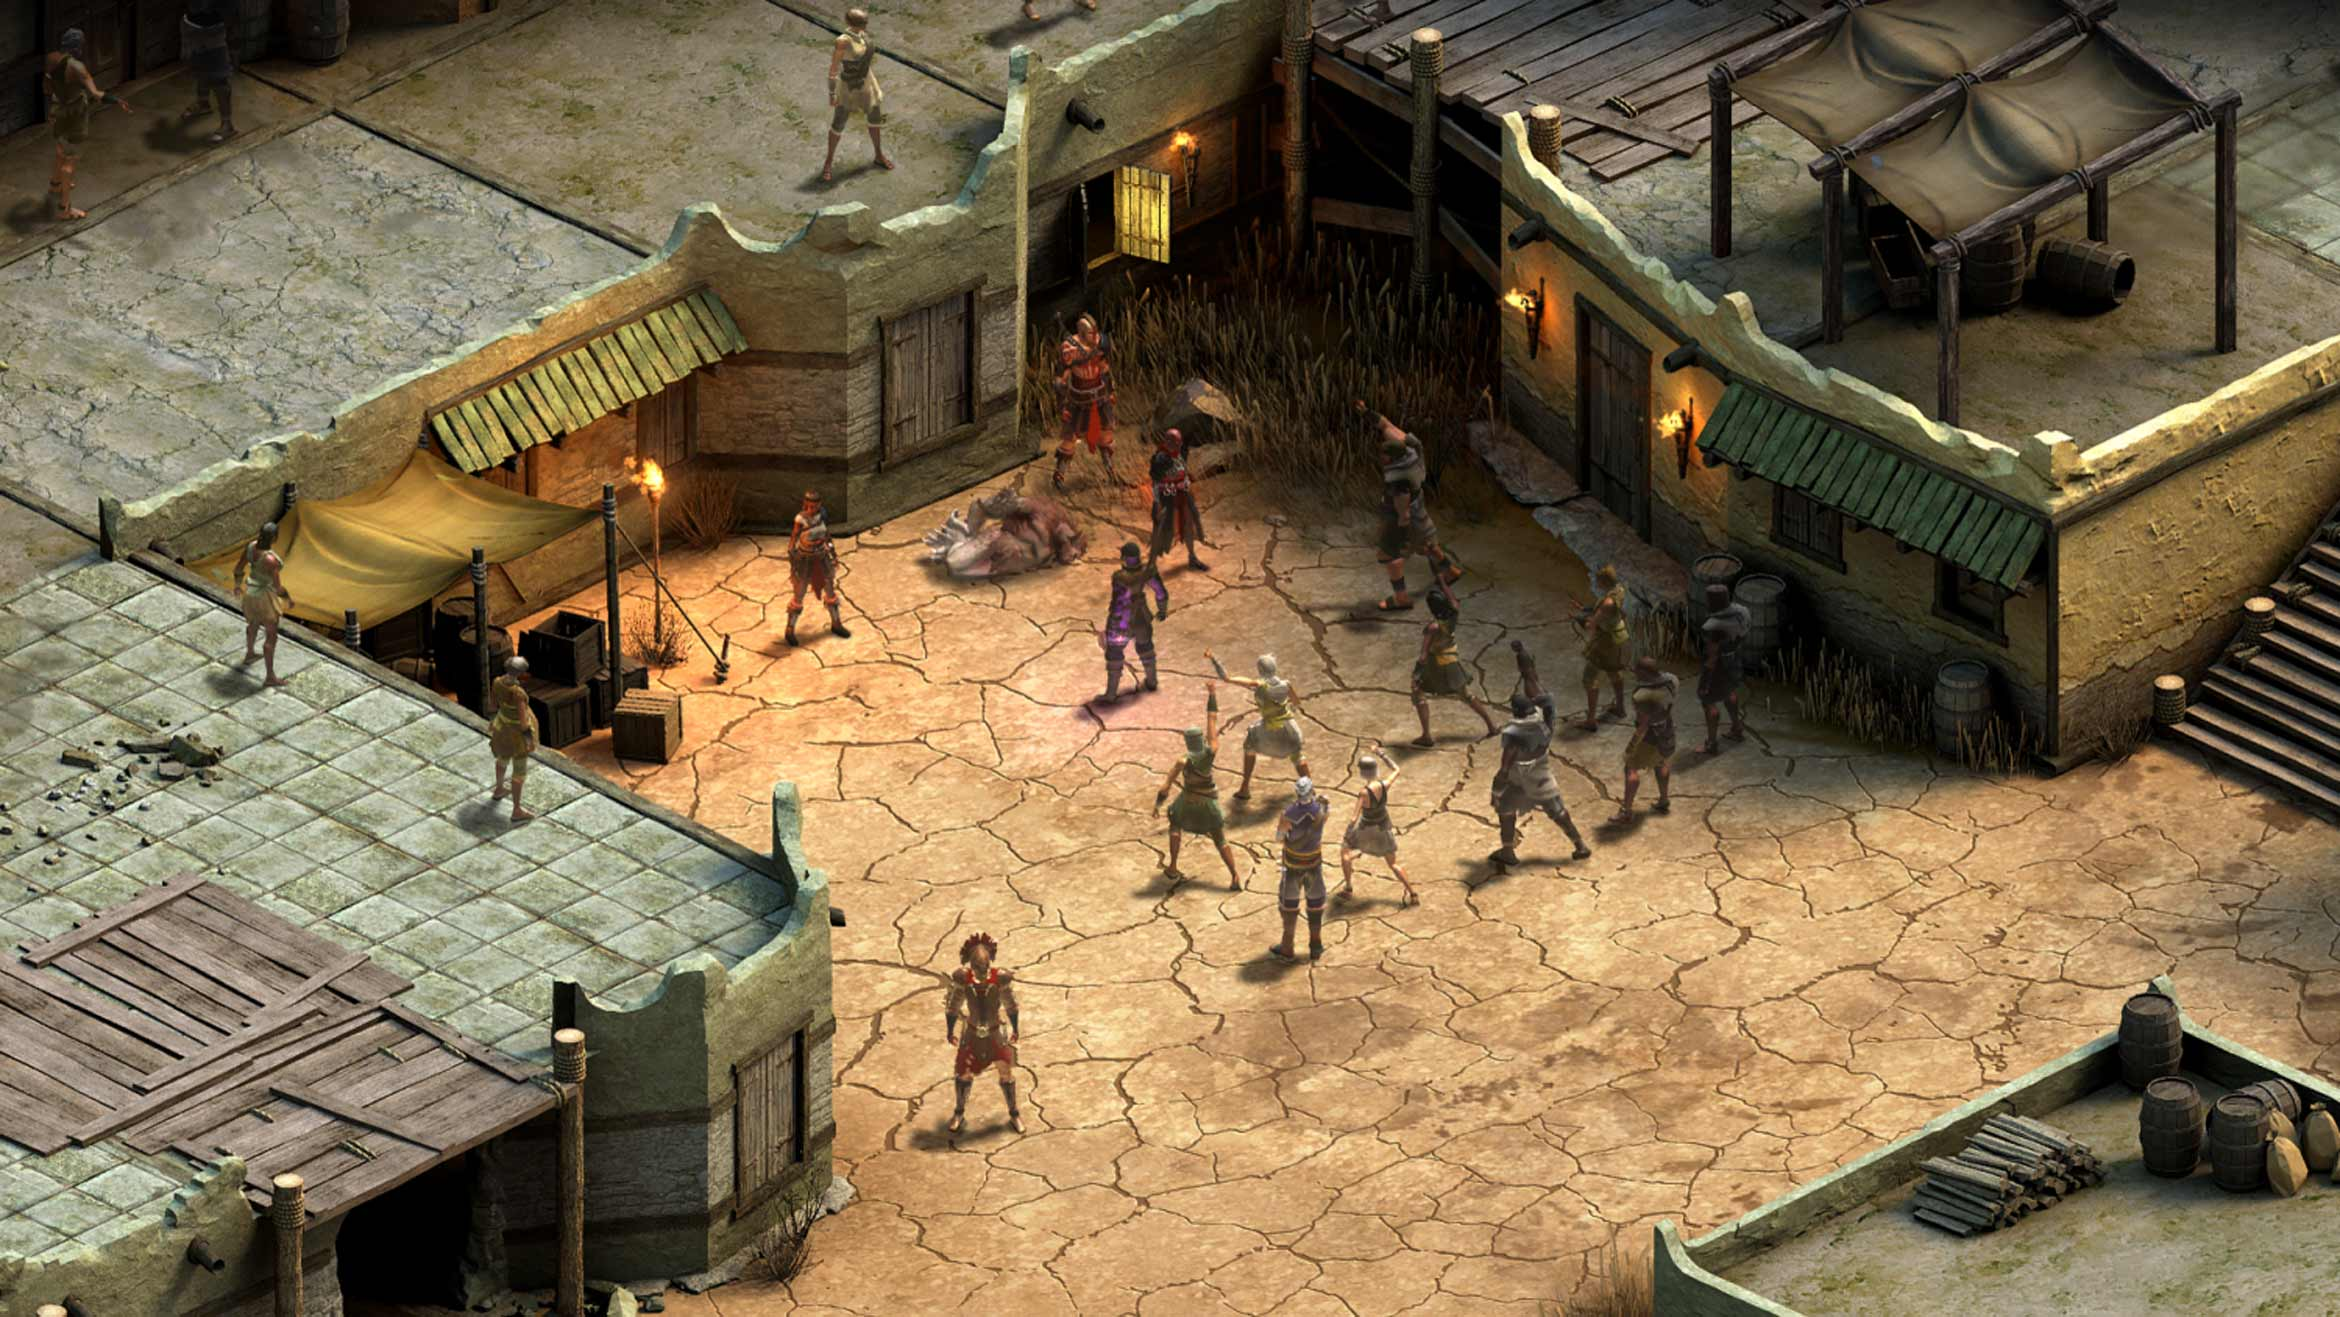 Screenshot for the game Tyranny [v 1.1.0.0023 + 4 DLC] (2016) PC | RePack от R.G. Механики